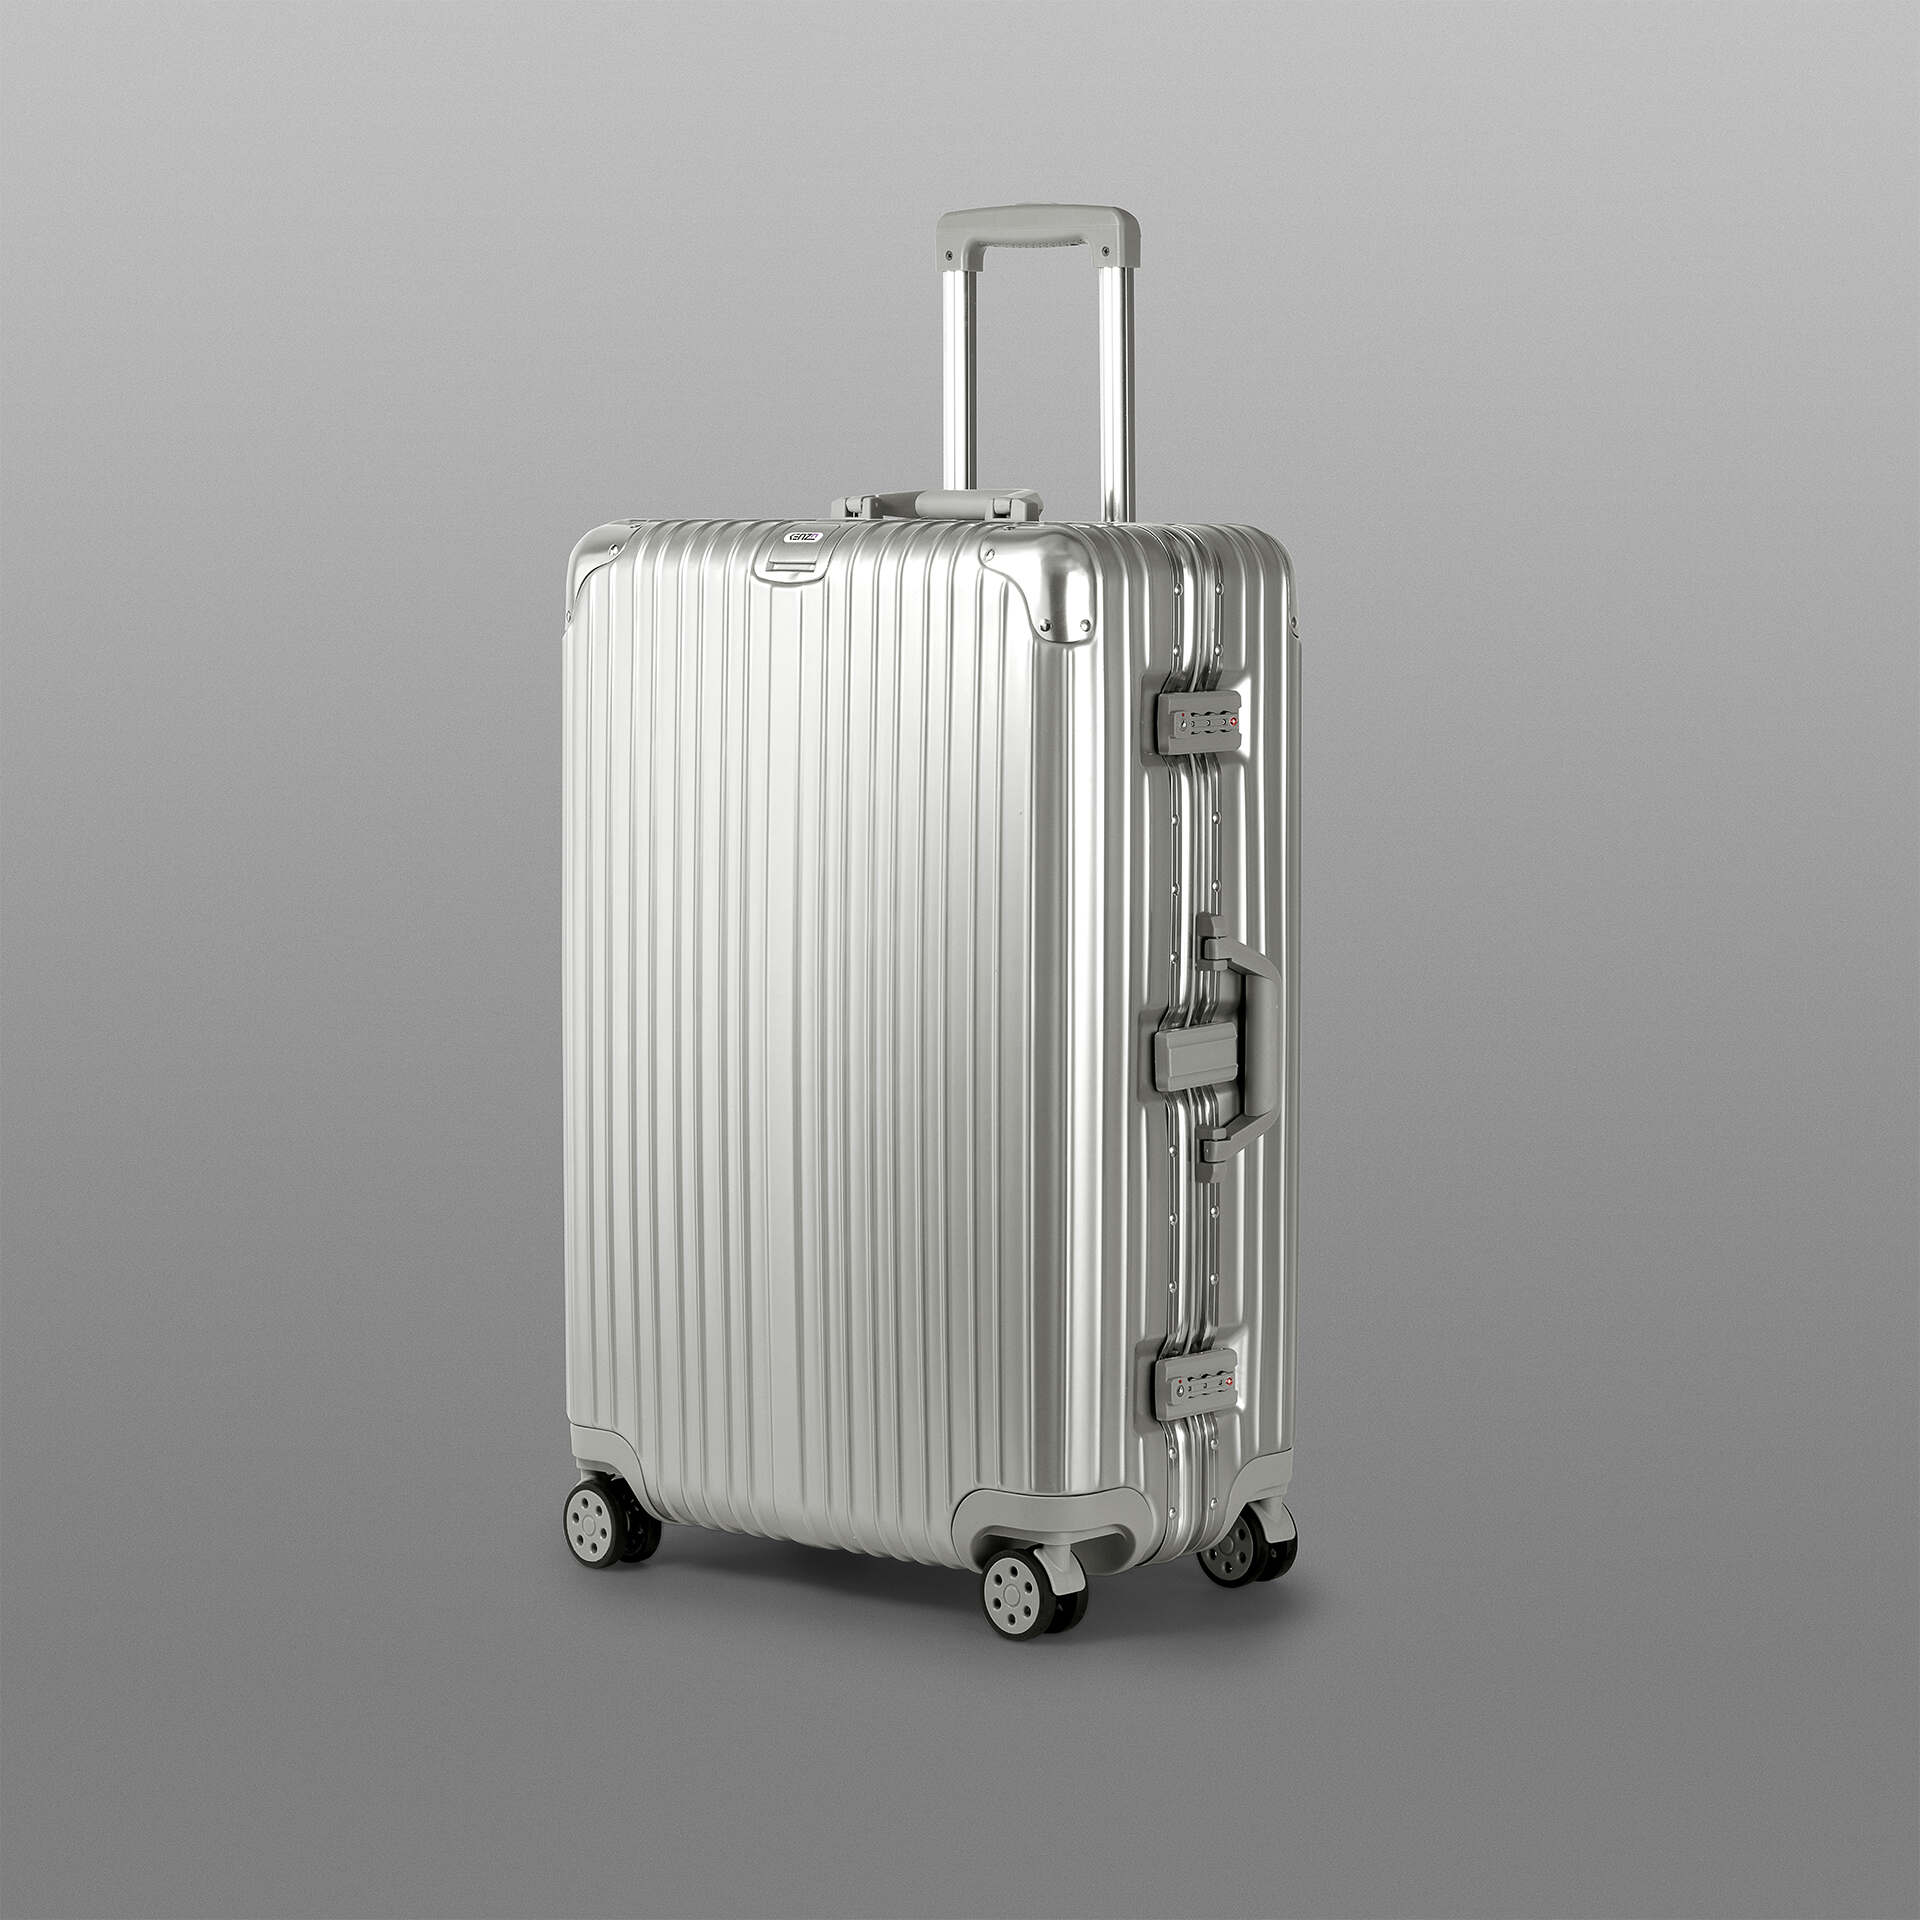 The Best Luggage Bags to Carry for travel